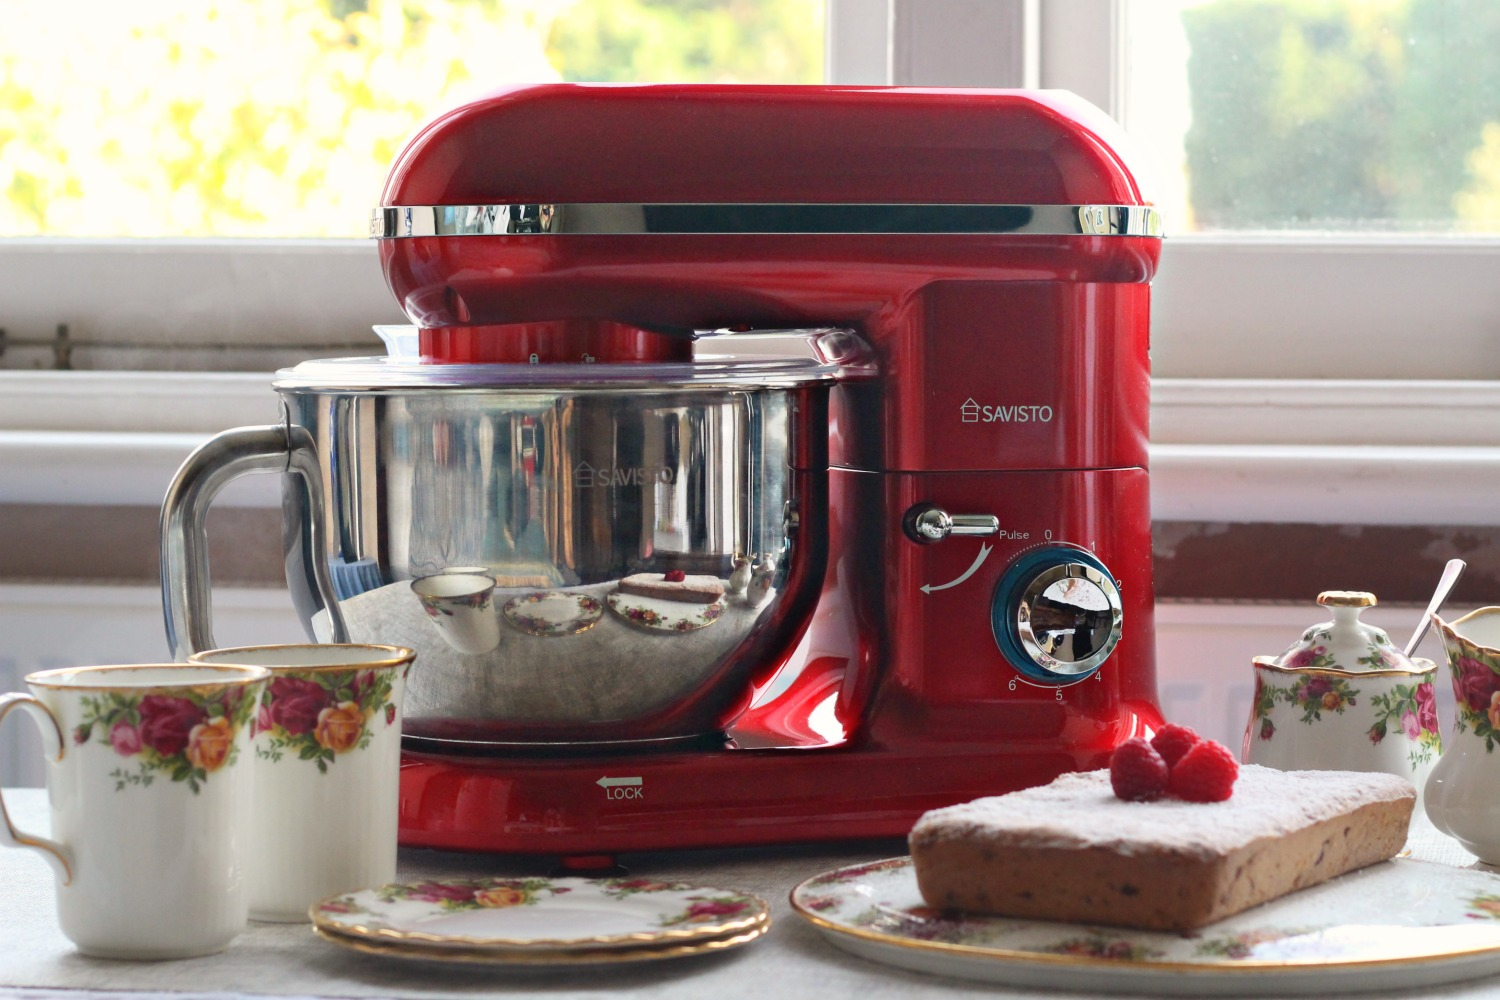 The Savisto 3-in-1 food mixer perfect for making banana bread to go with your afternoon cup of tea.